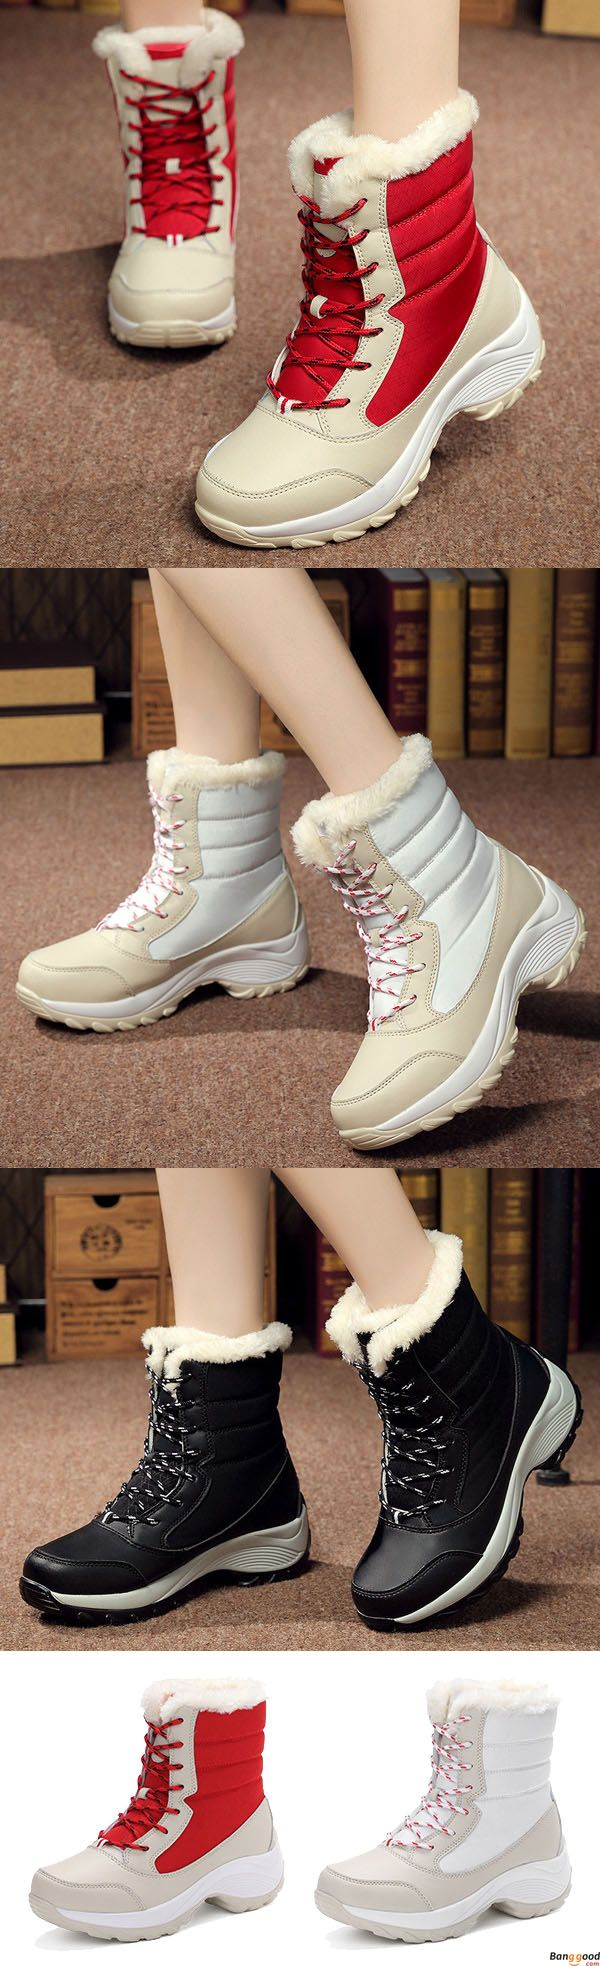 US$36.99+ Free Shipping. Warm Artificial Wool Lining Outdoor Hiking Ankle Cotton Snow Boots. Comfy and casual. Winter fashion style for women. Shop at banggood with super affordable price.